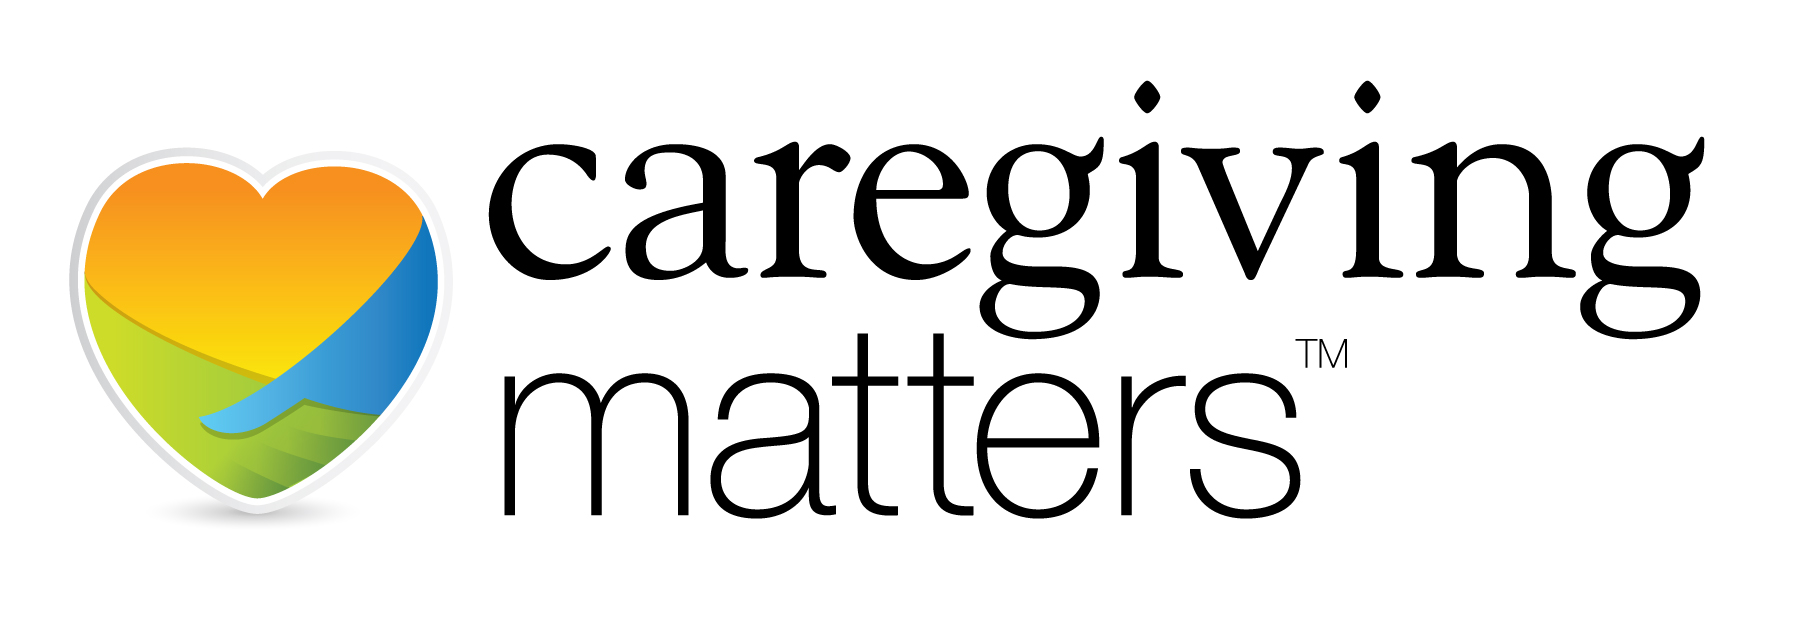 Caregiving Matters